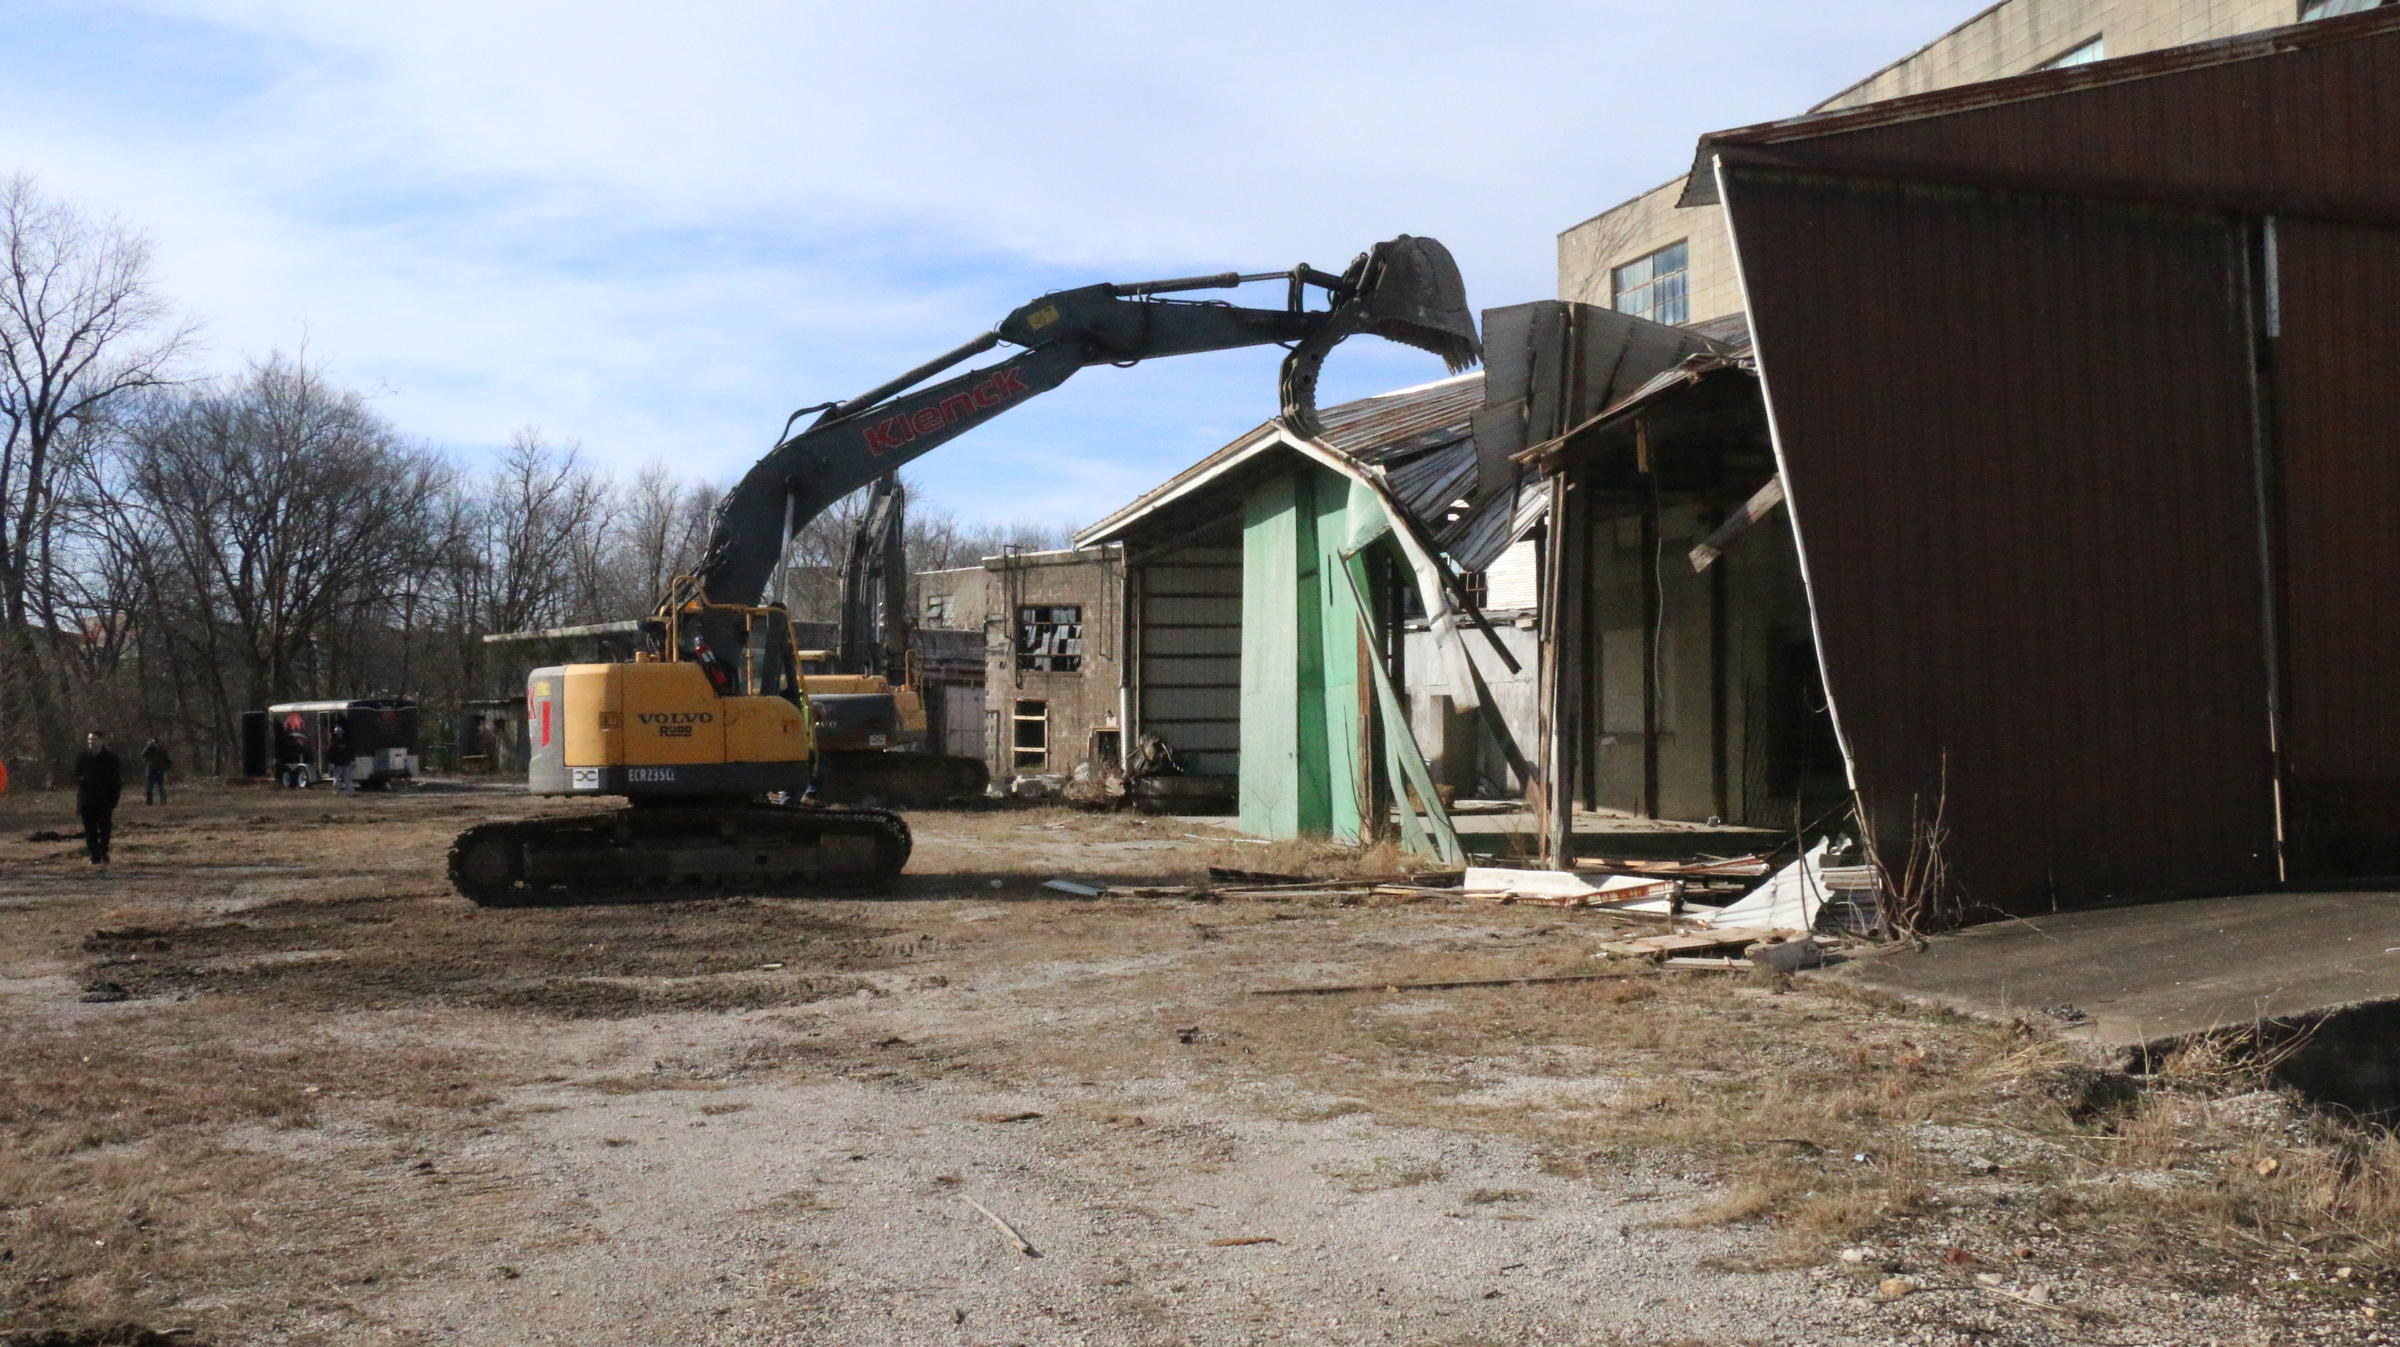 The Excavator Being Used To Start Demolition Of The Former Jasper Cabinet  Company Building.